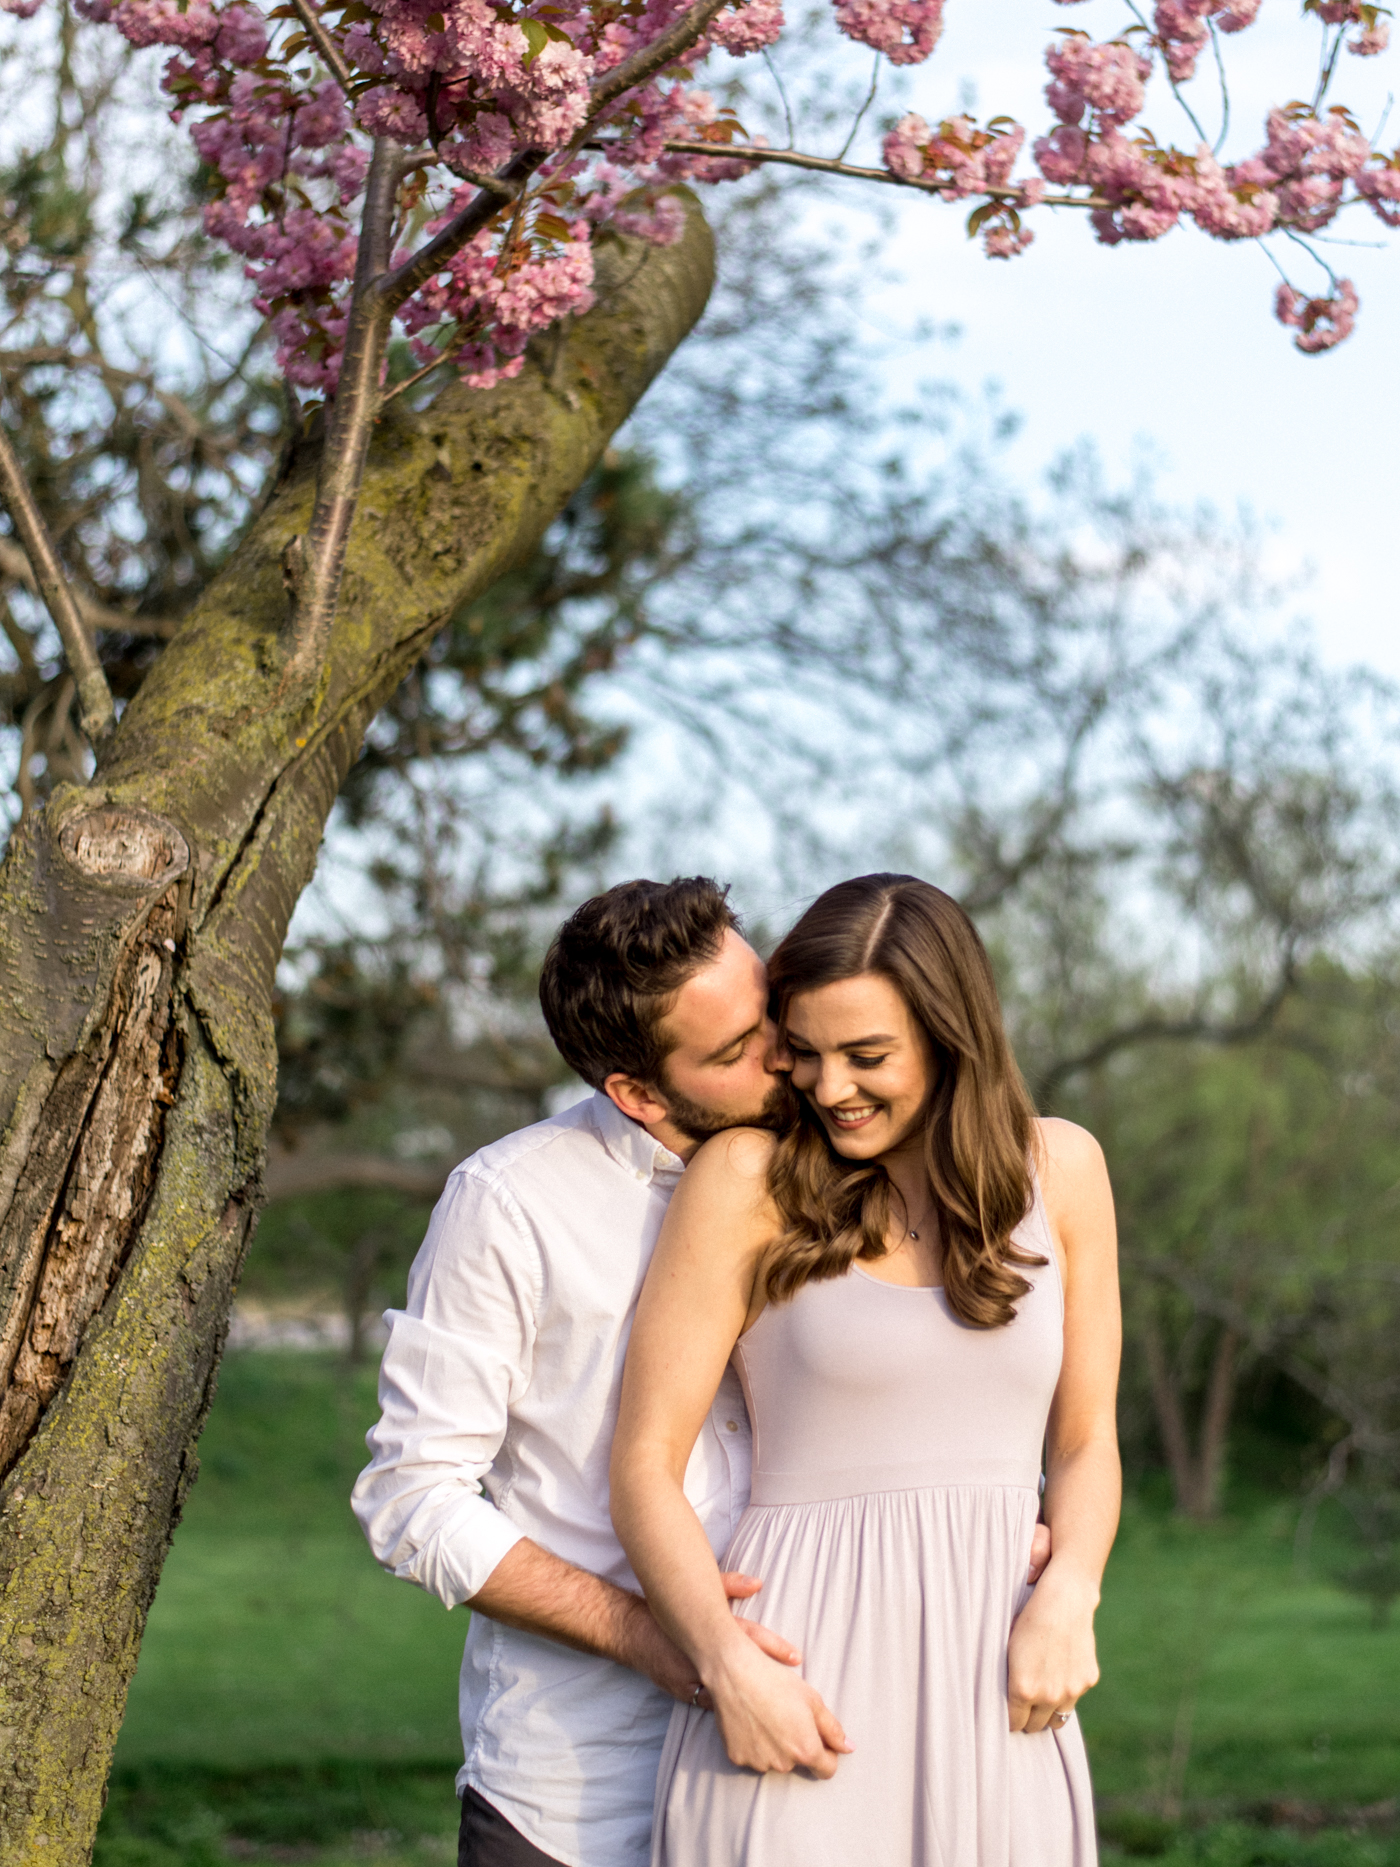 Chris & Heather's Engagement Session in Vineland Ontario Spring Blossoms Trees by Hush Hush Photography & Film Aidan Hennebry - 18.jpg